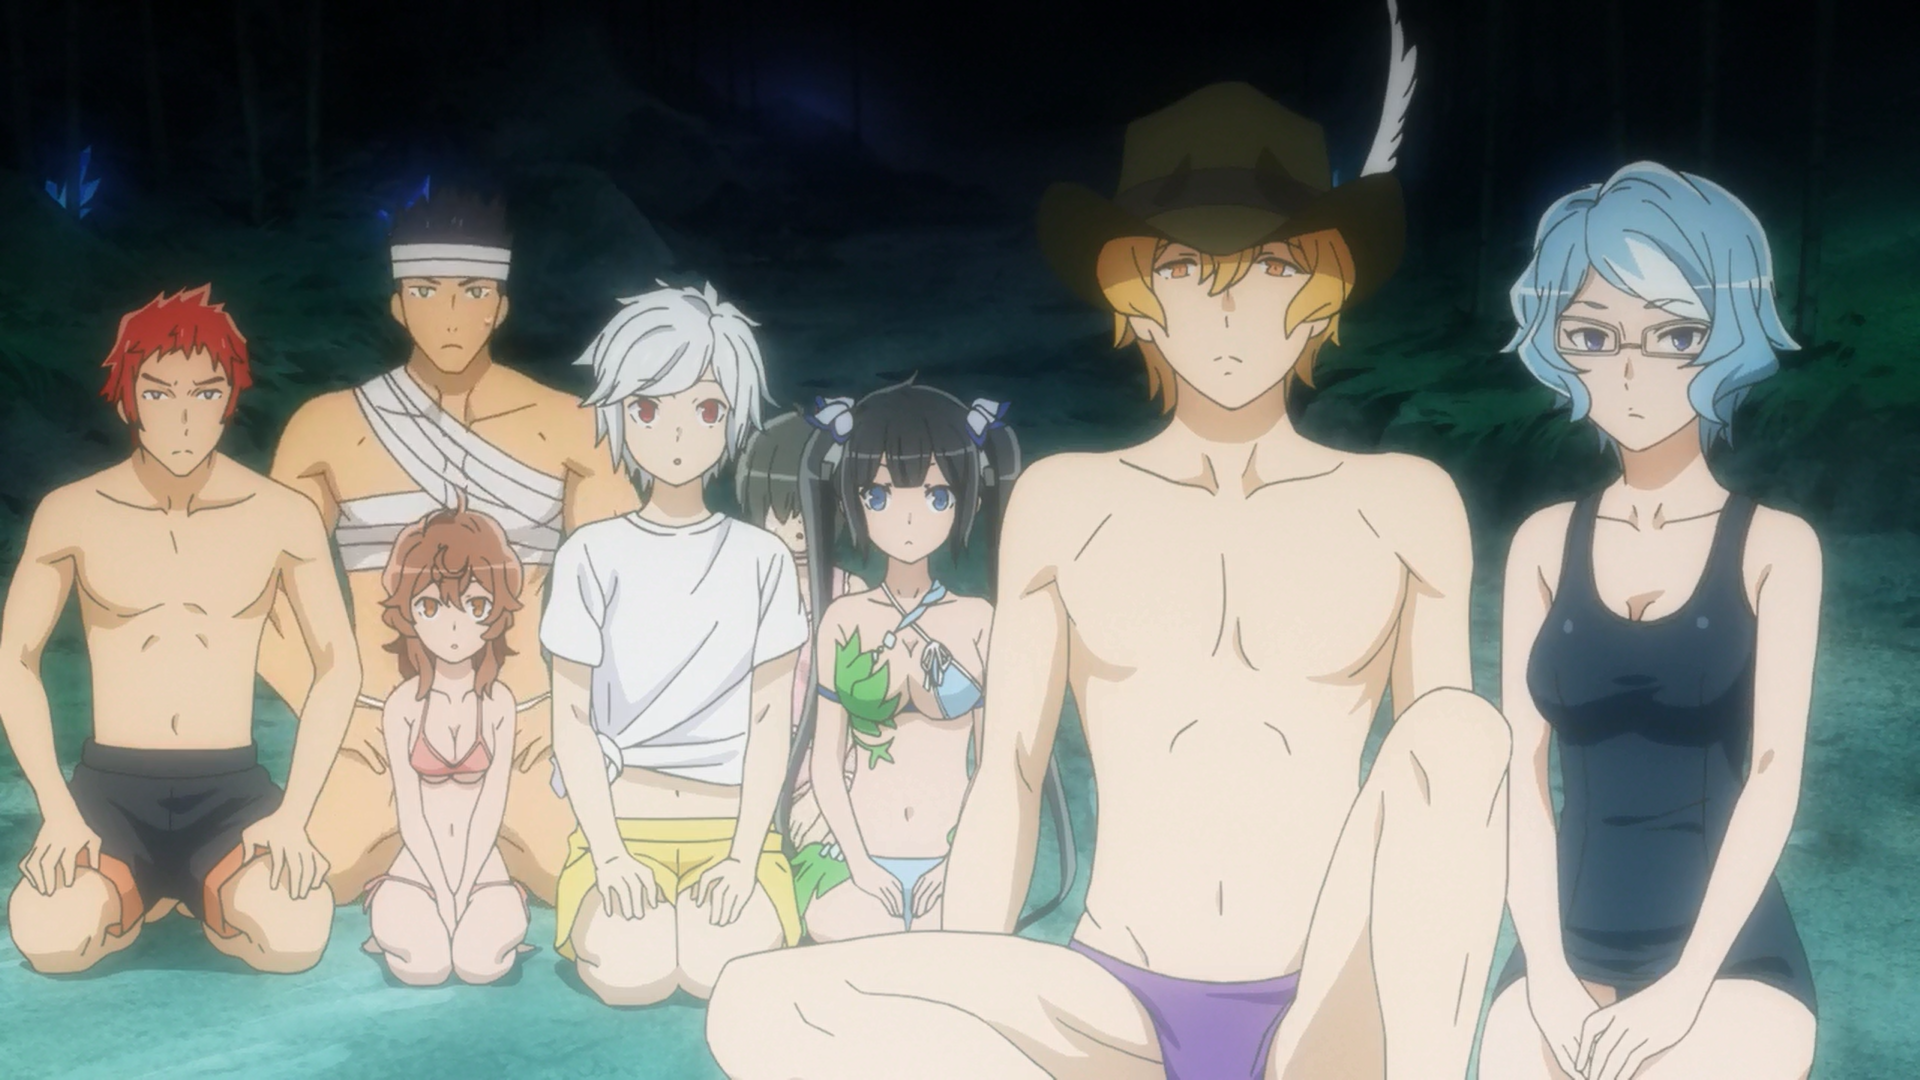 Is It Wrong to Expect a Hot Spring in a Dungeon? (DanMachi